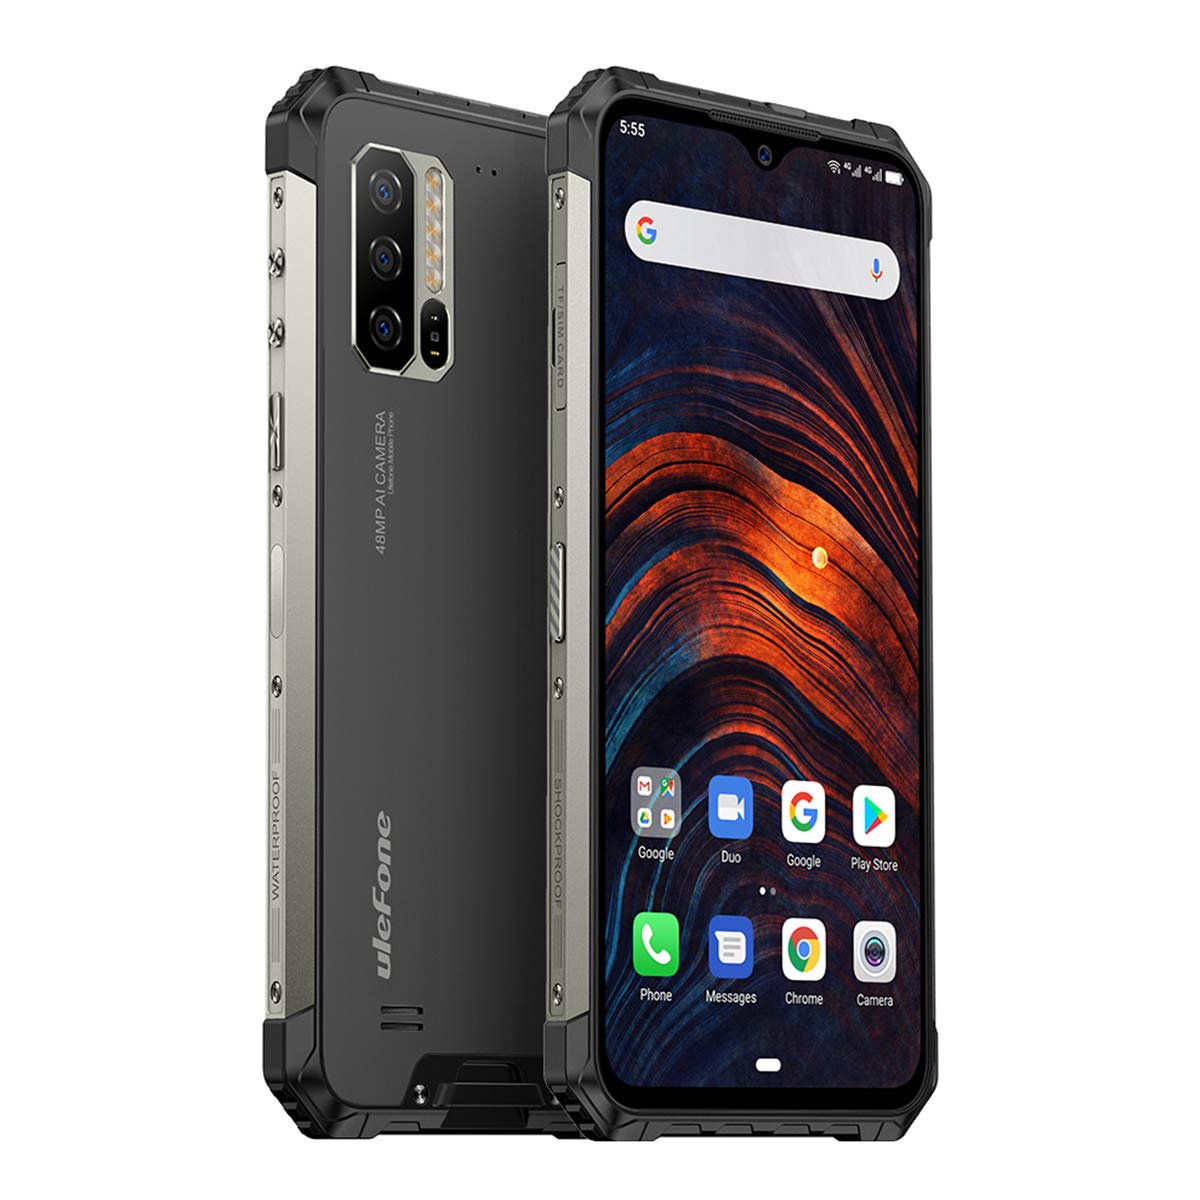 """Ulefone Armor 7 (2020) Rugged Smartphone Unlocked, IP68 Waterproof Cell Phones Helio P90 8GB + 128GB, 48MP + 16MP + 8MP Triple Camera, 5500mAh Battery QI Wireless Charge, 6.3"""" FHD+, Global Bands, NFC"""